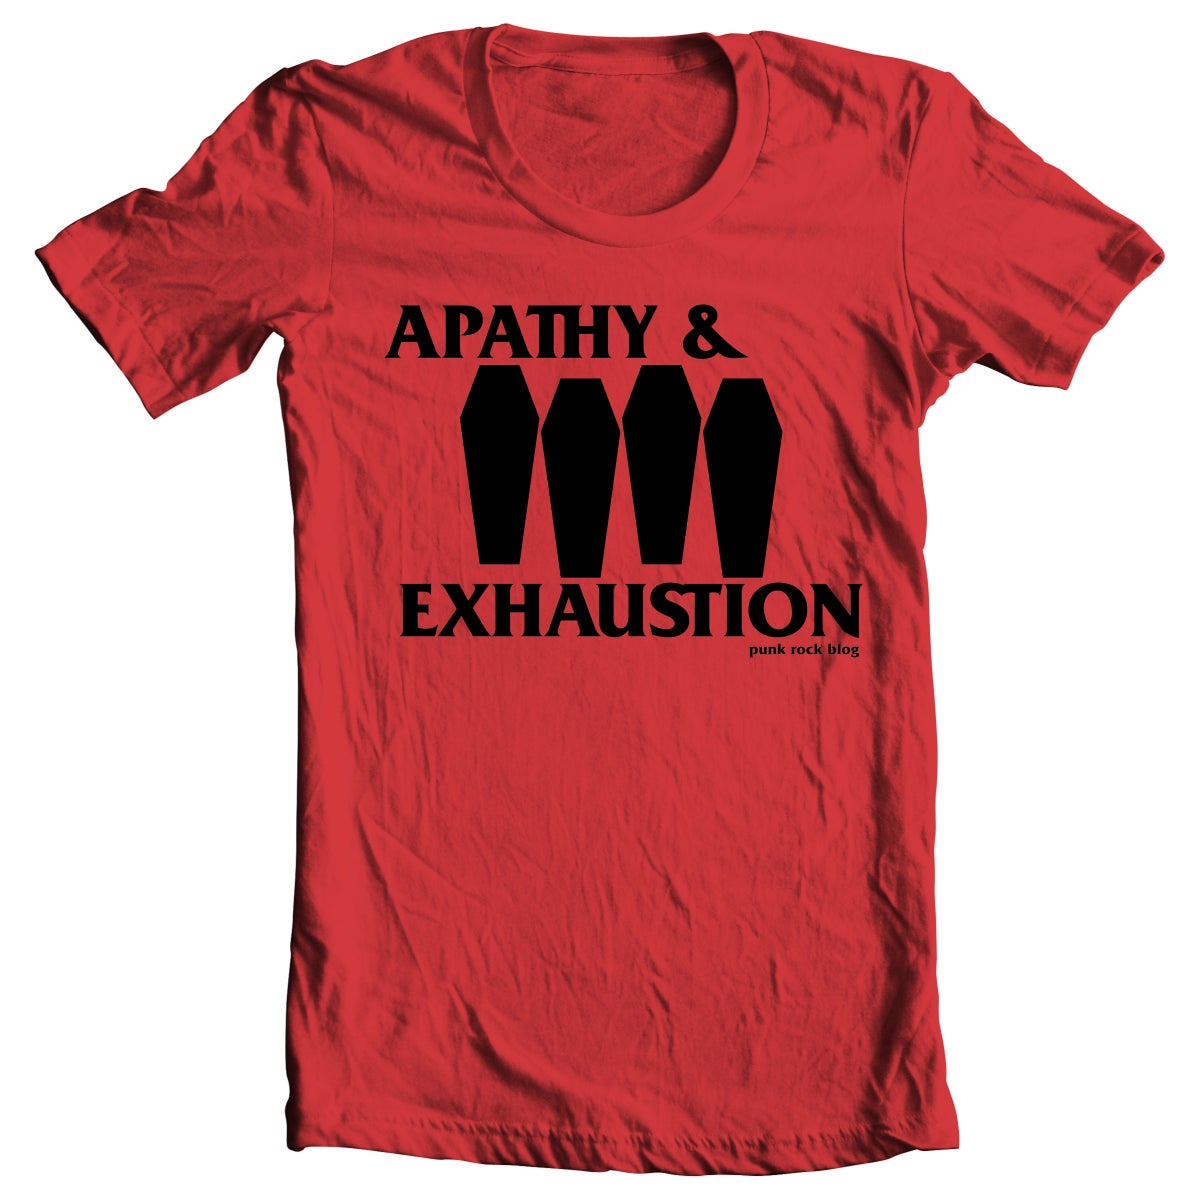 Image of PRE-ORDER: Apathy & Exhaustion - Coffin Flag T-shirt (Red)